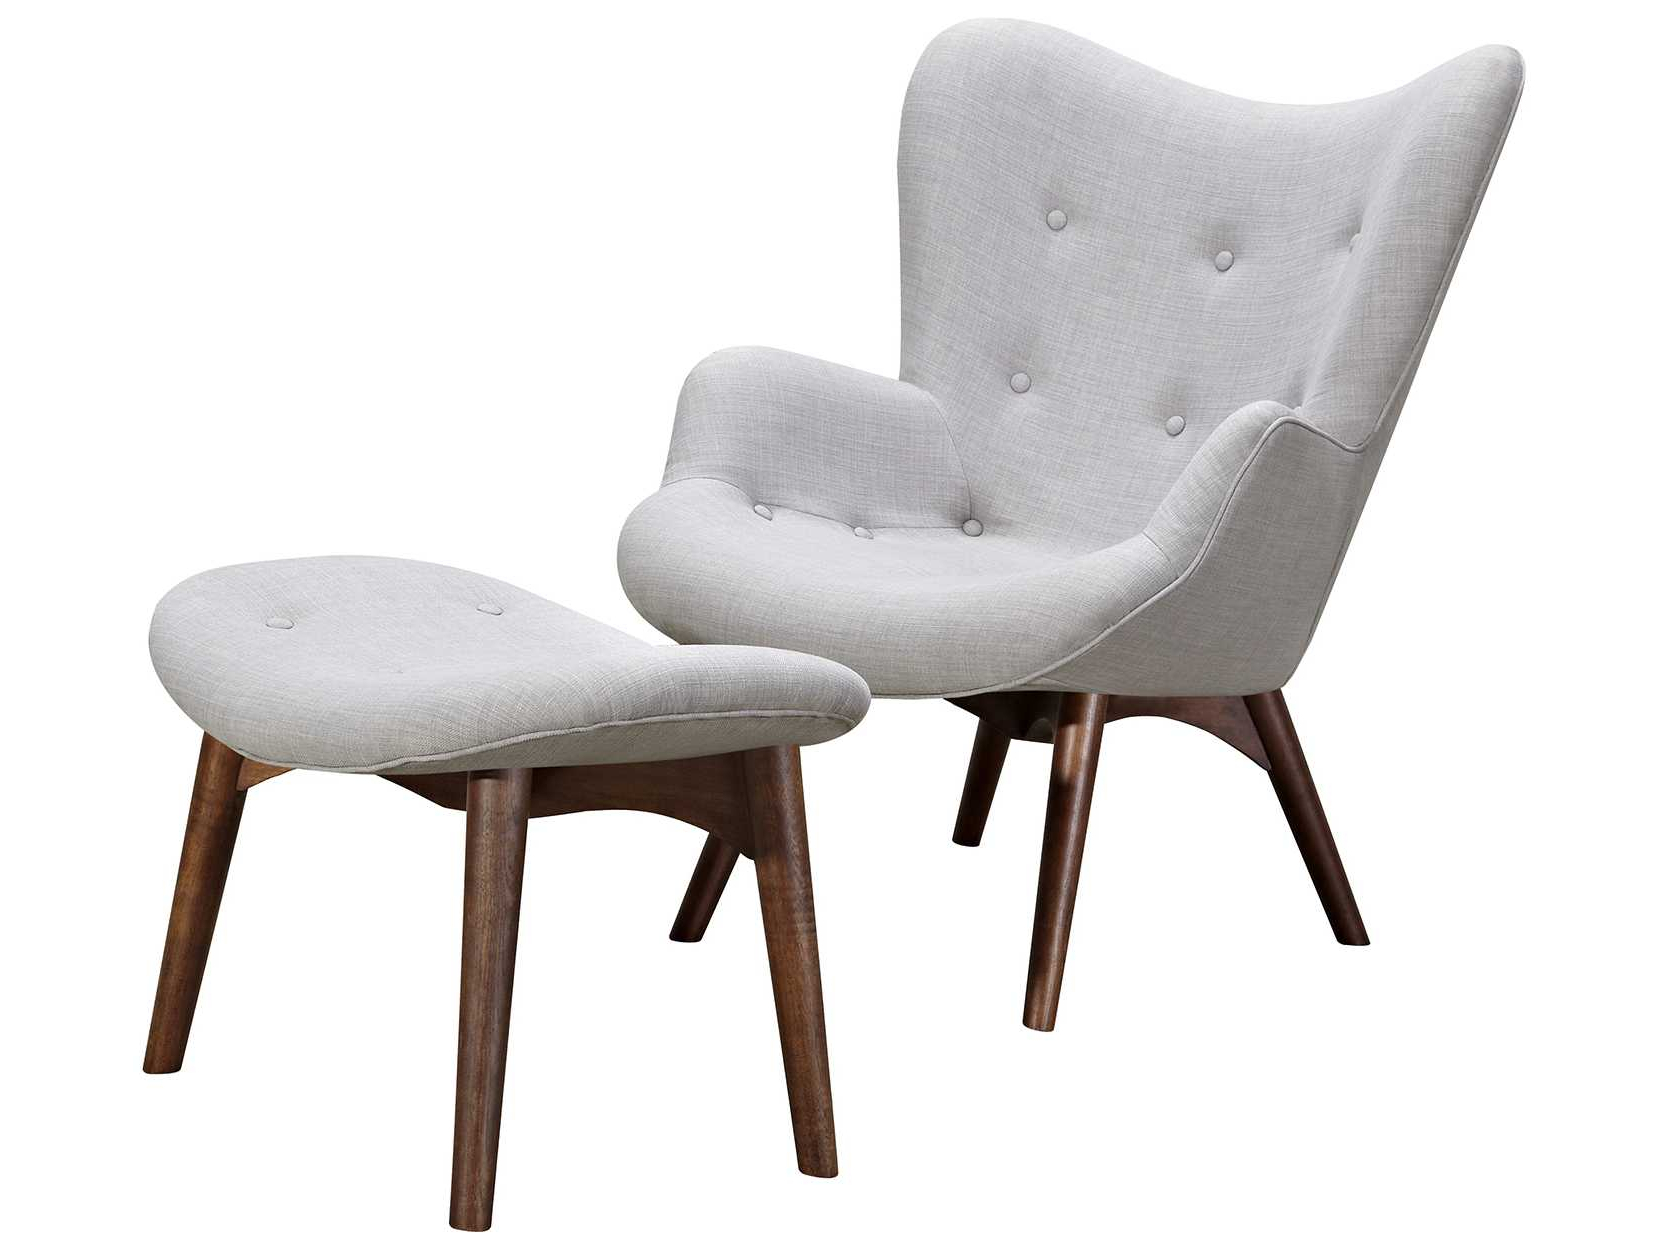 2018 Aidan Ii Swivel Accent Chairs Throughout Nyekoncept Aiden Glacier White Accent Chair & Ottoman With Walnut (View 5 of 20)